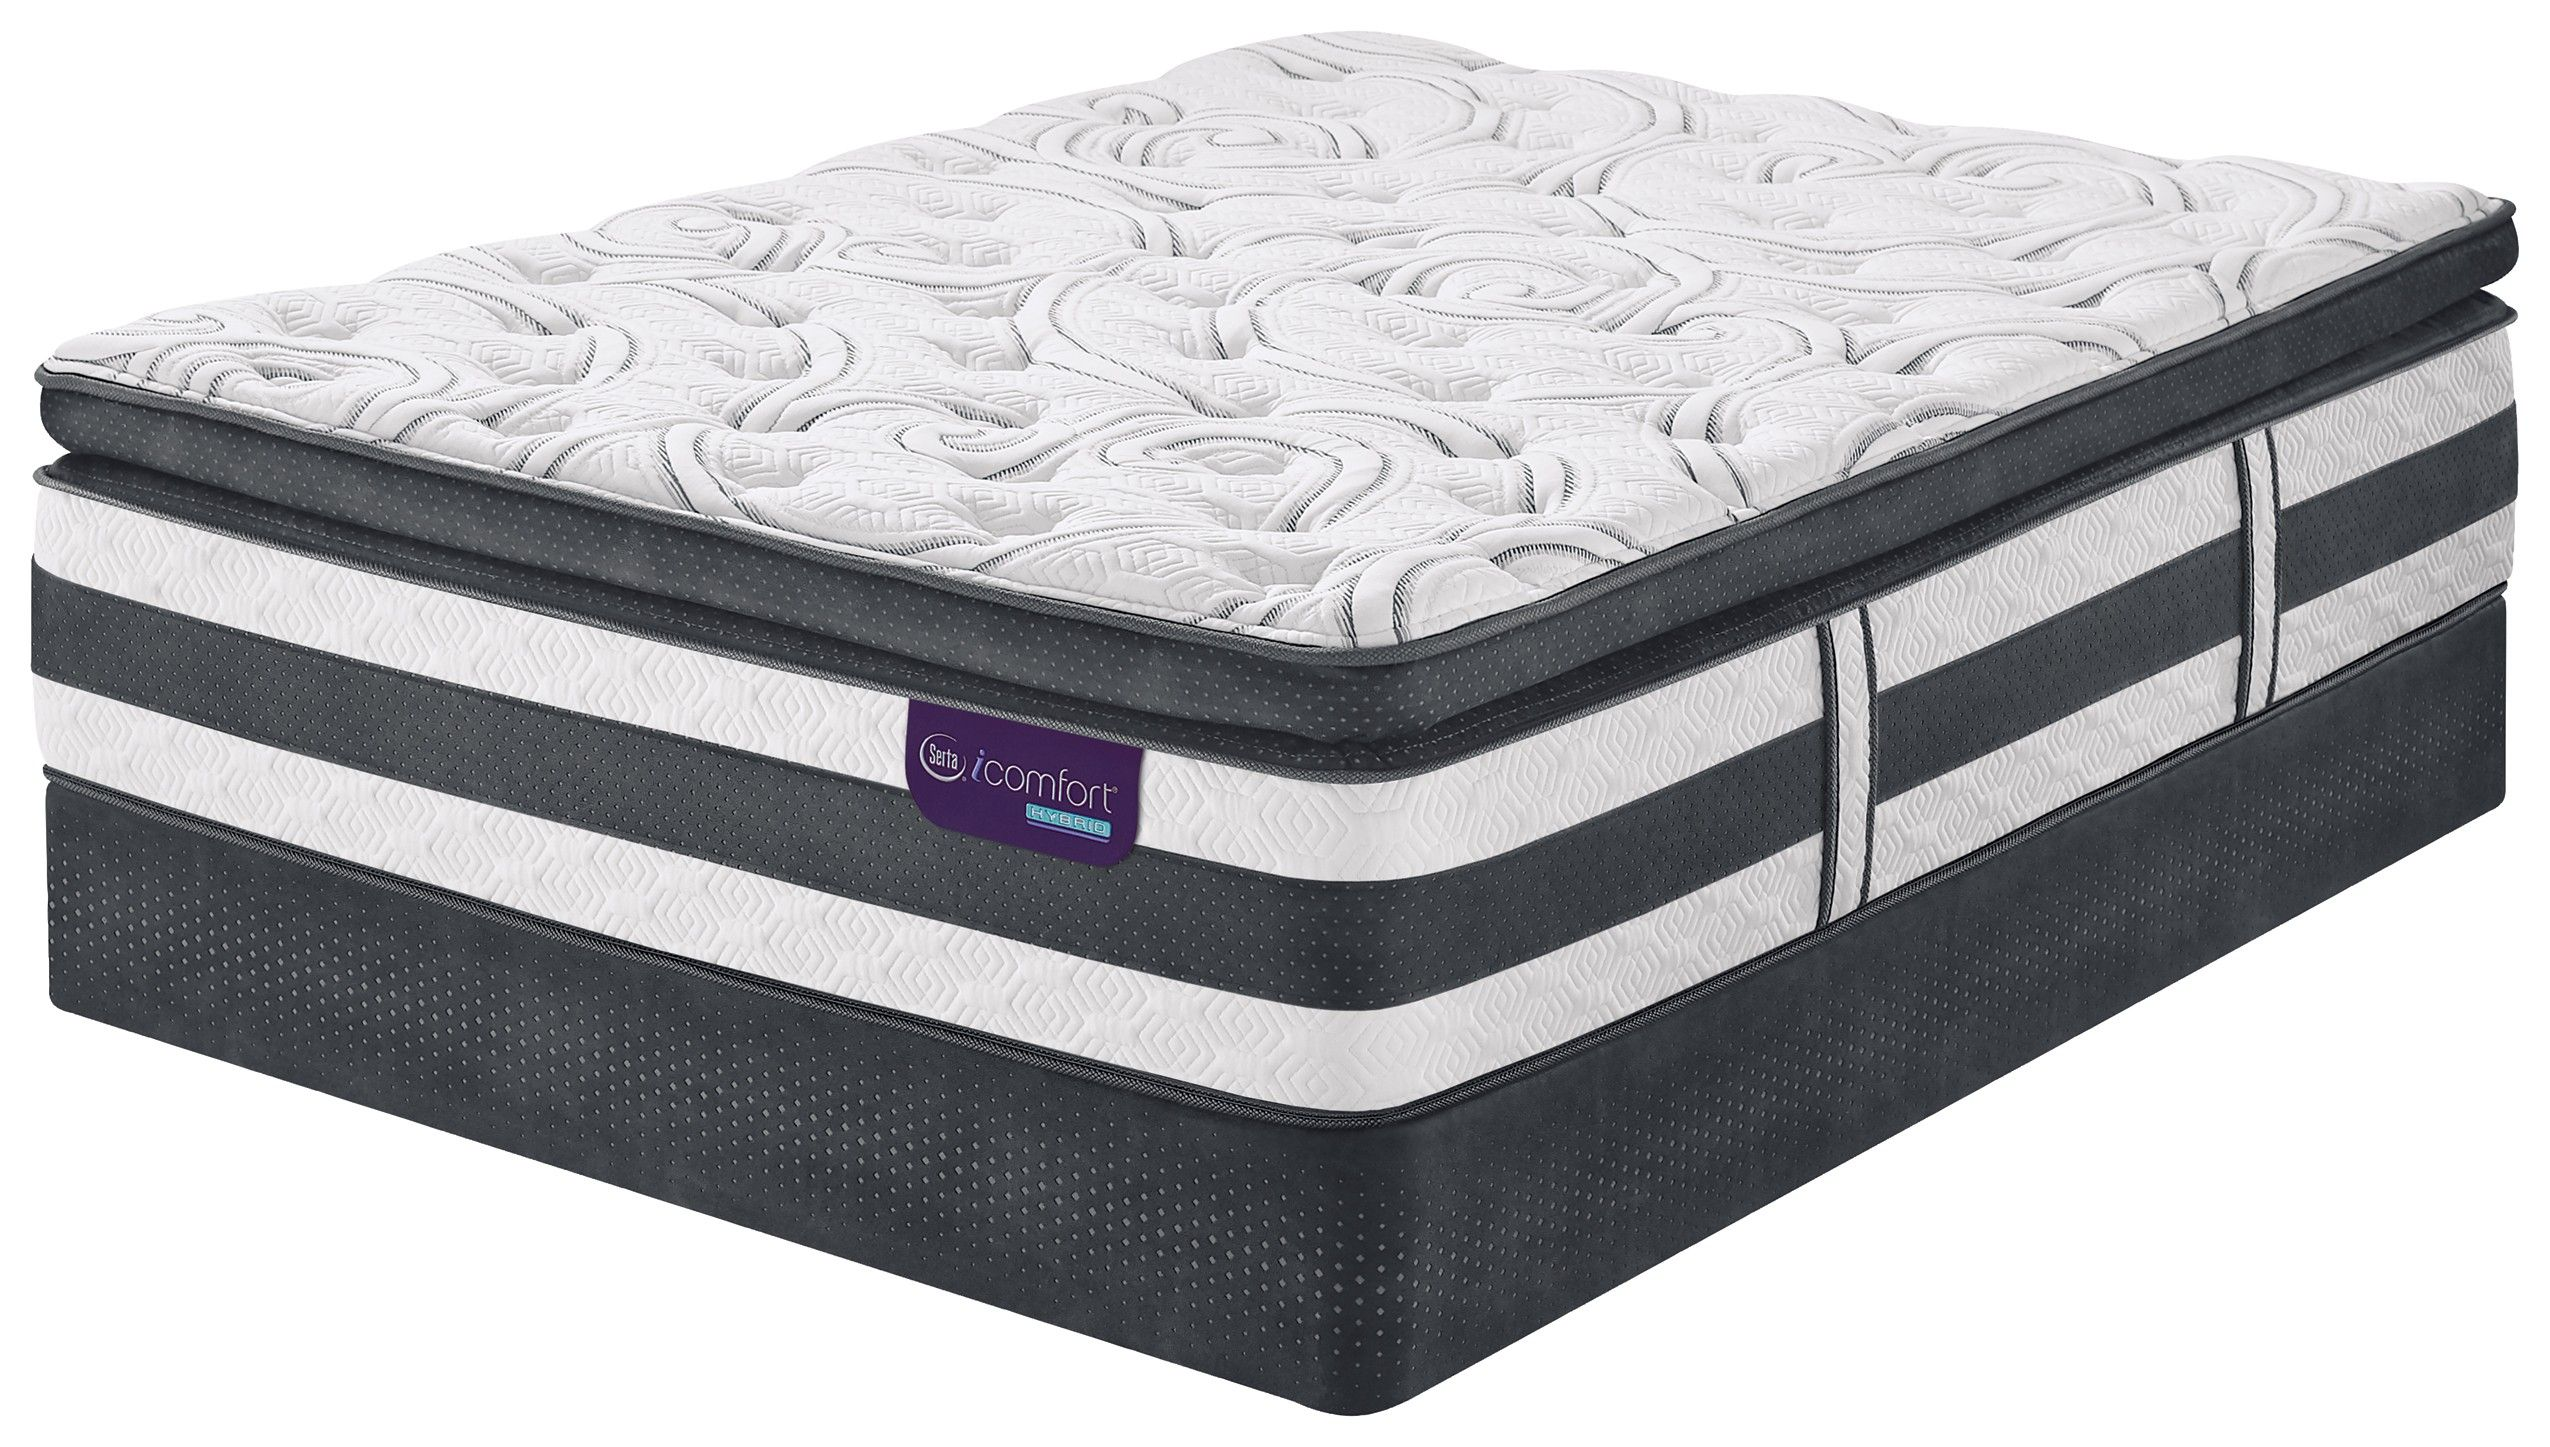 Serta Perfect Sleeper Lockland Super Pillow Top Mattress Hybrid